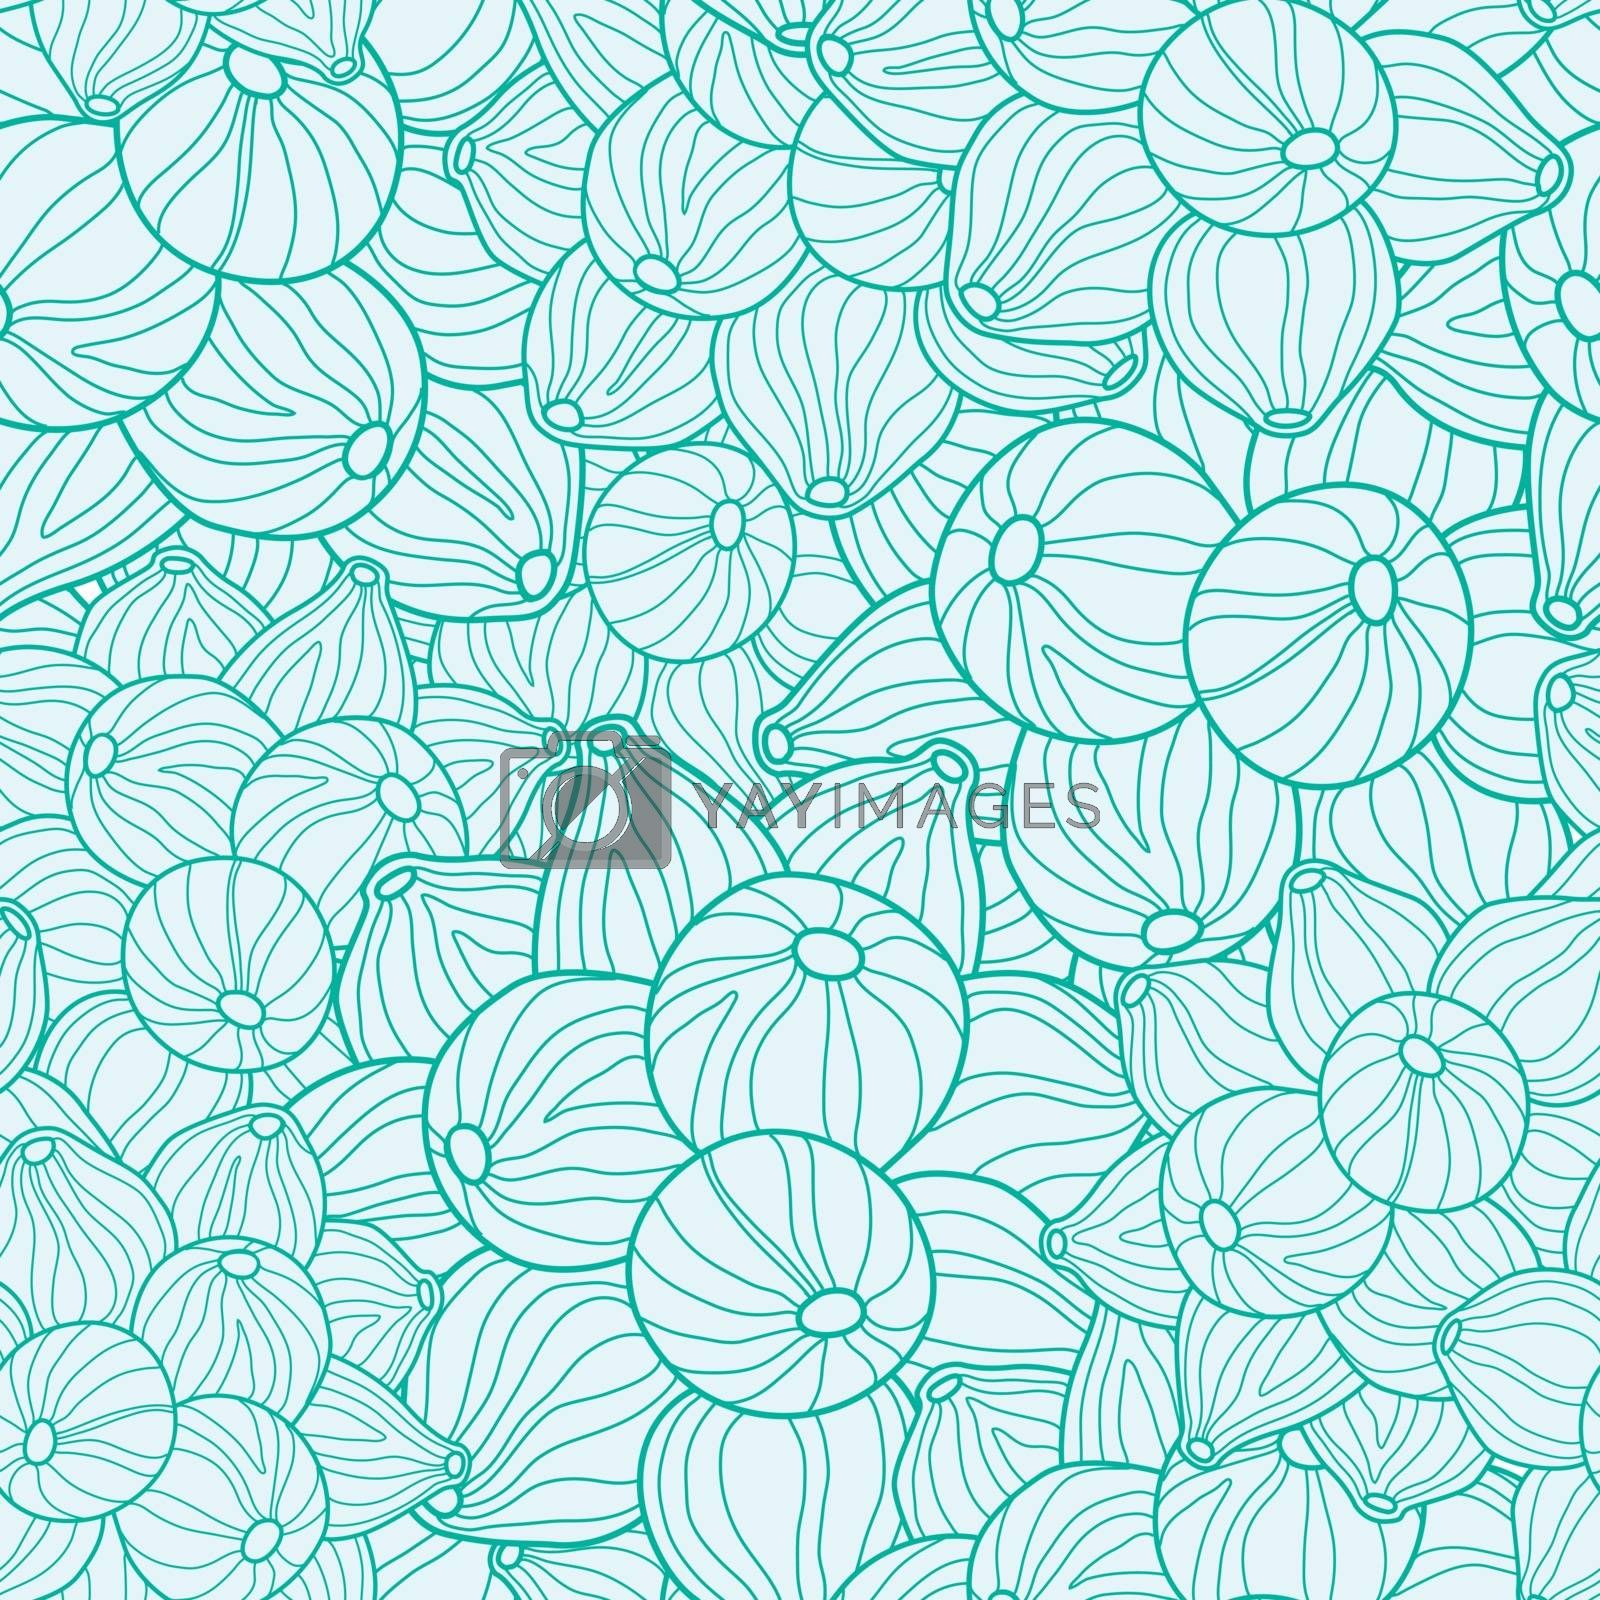 Vector nature inspired abstract texture seamless graphic design